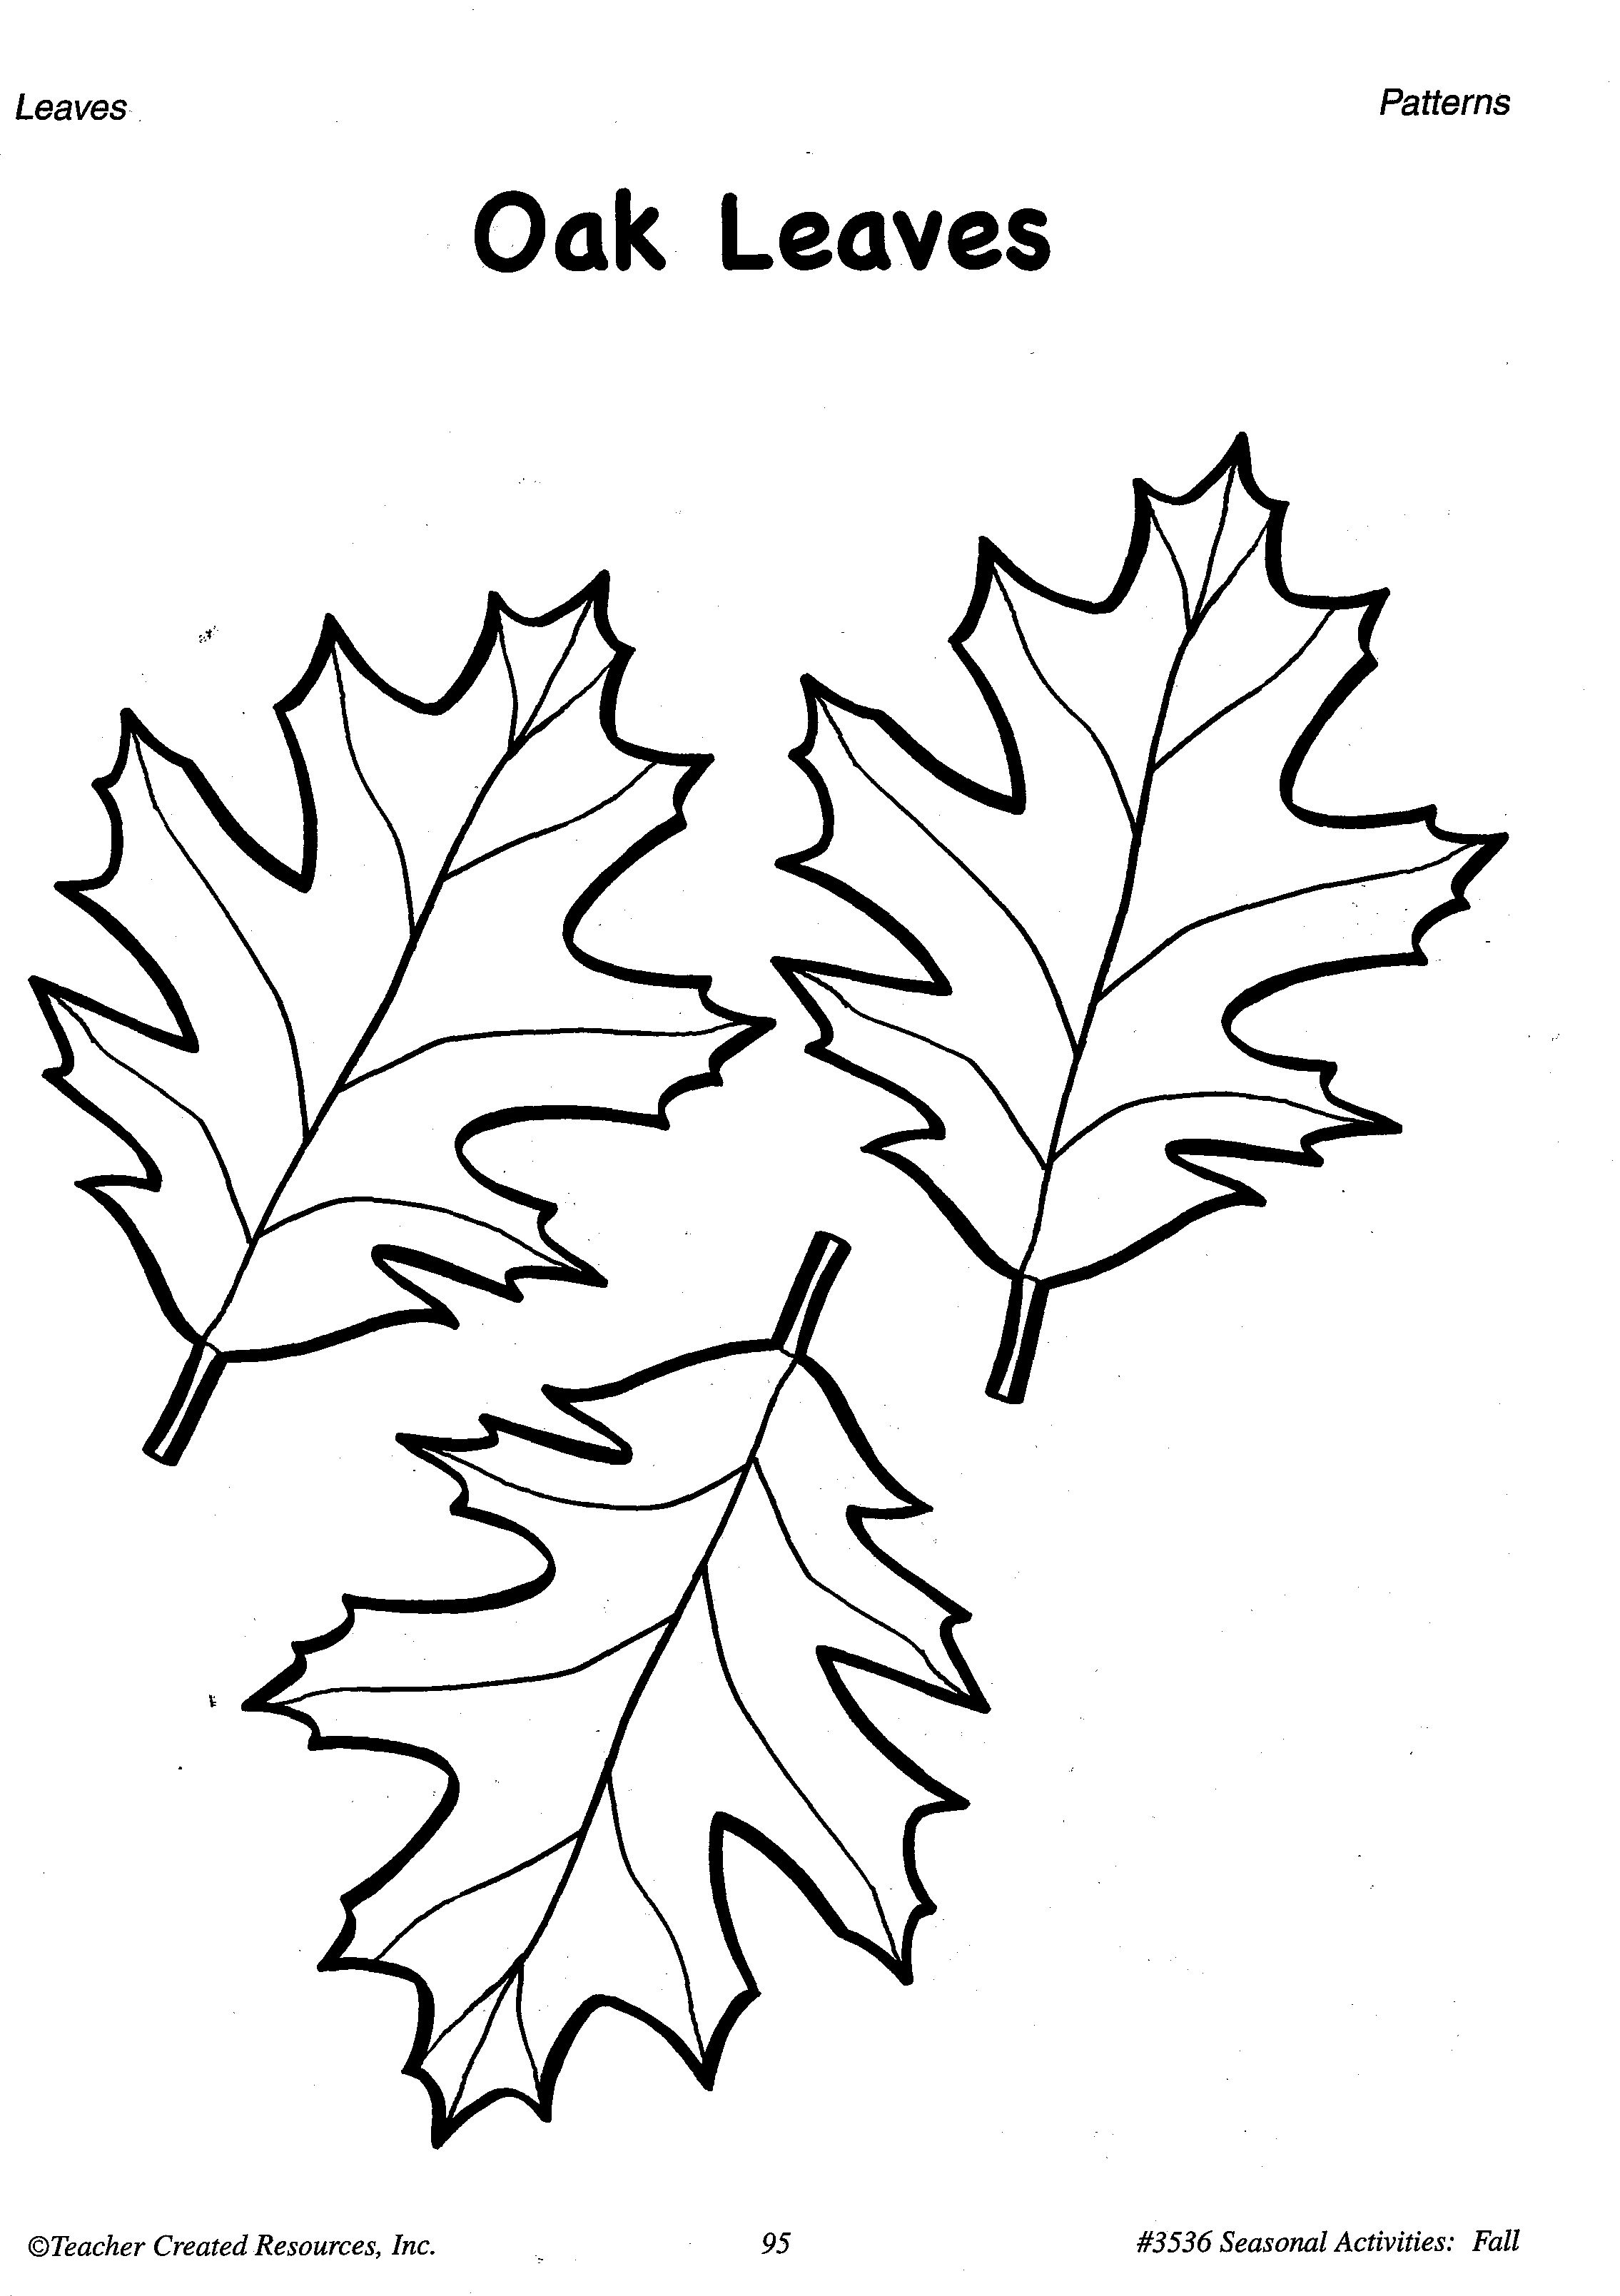 Leaf Printable Pattern